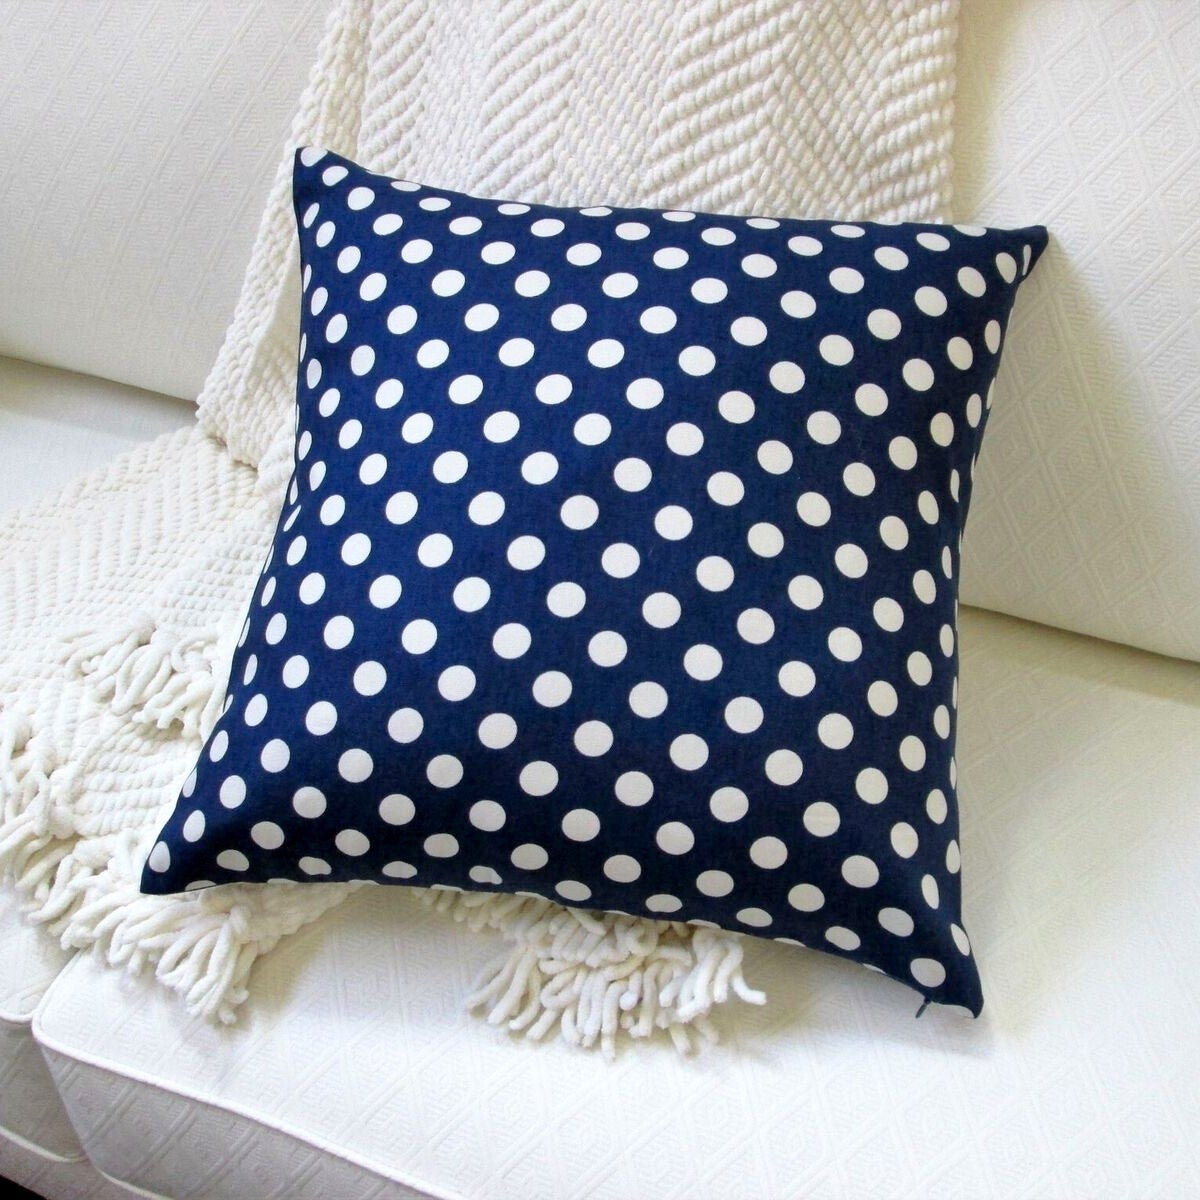 Pillows Indoor 18 Inch Modern Country Cottage Shabby Chic Home Polka Dot Medium In Navy Blue Pillow Cover Only